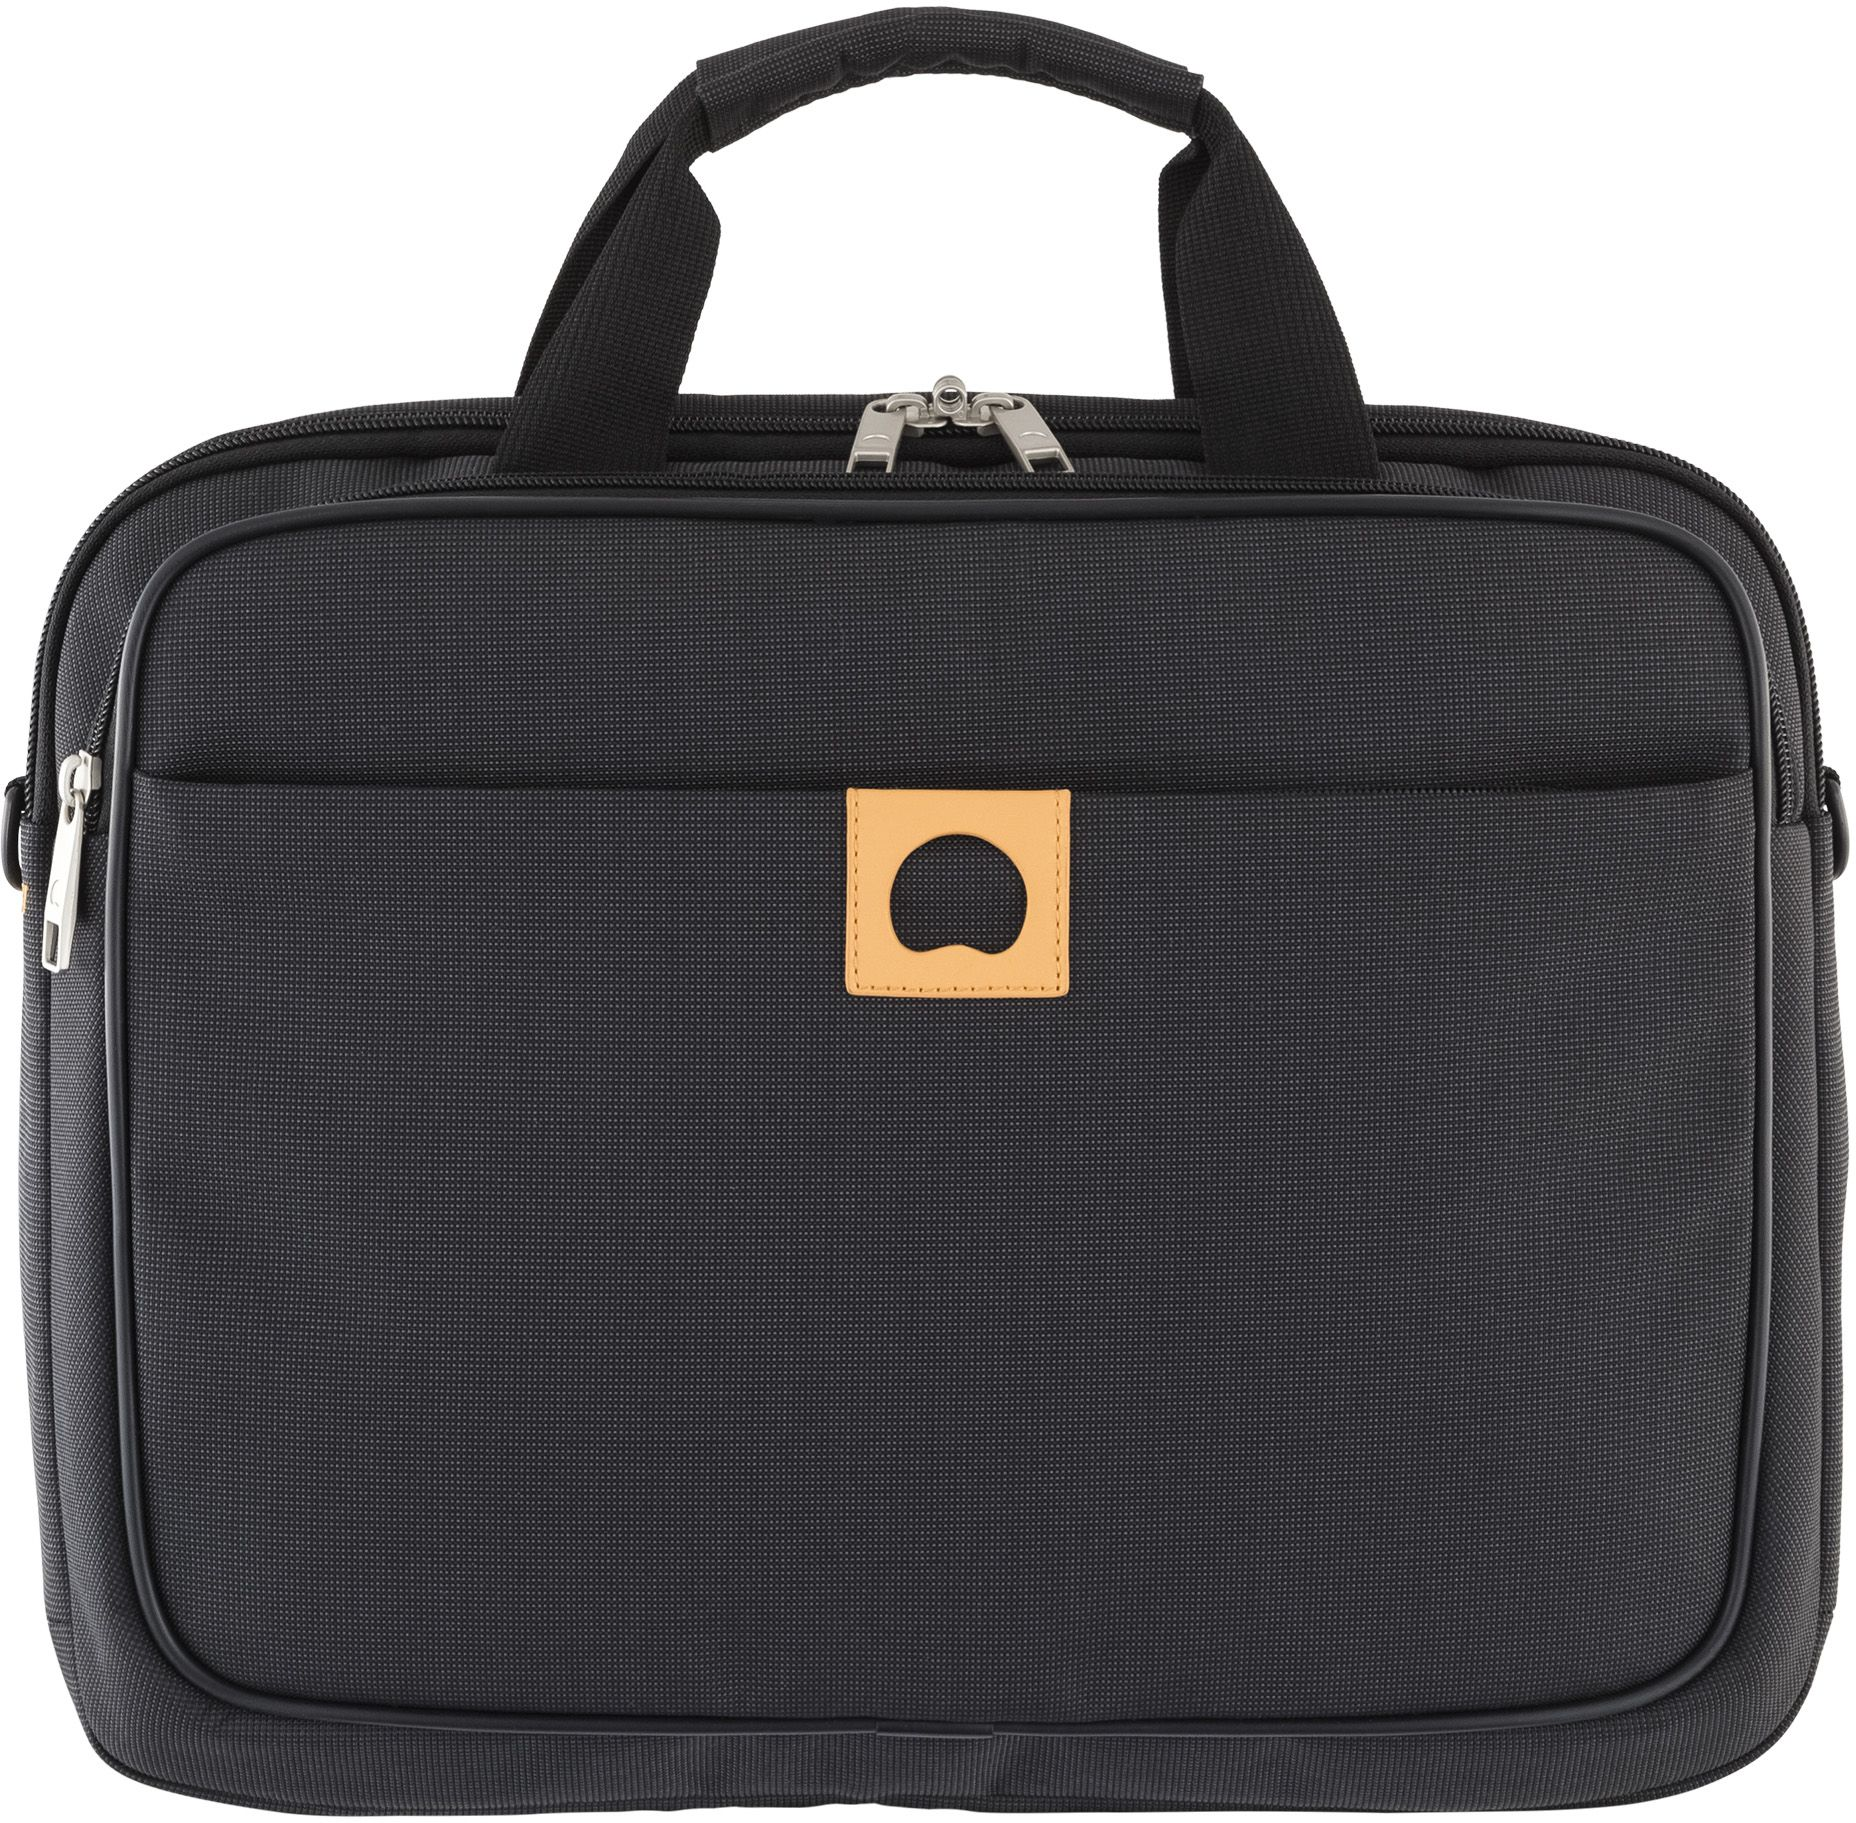 DELSEY  Aktentasche mit Laptopfach, »Montholon«